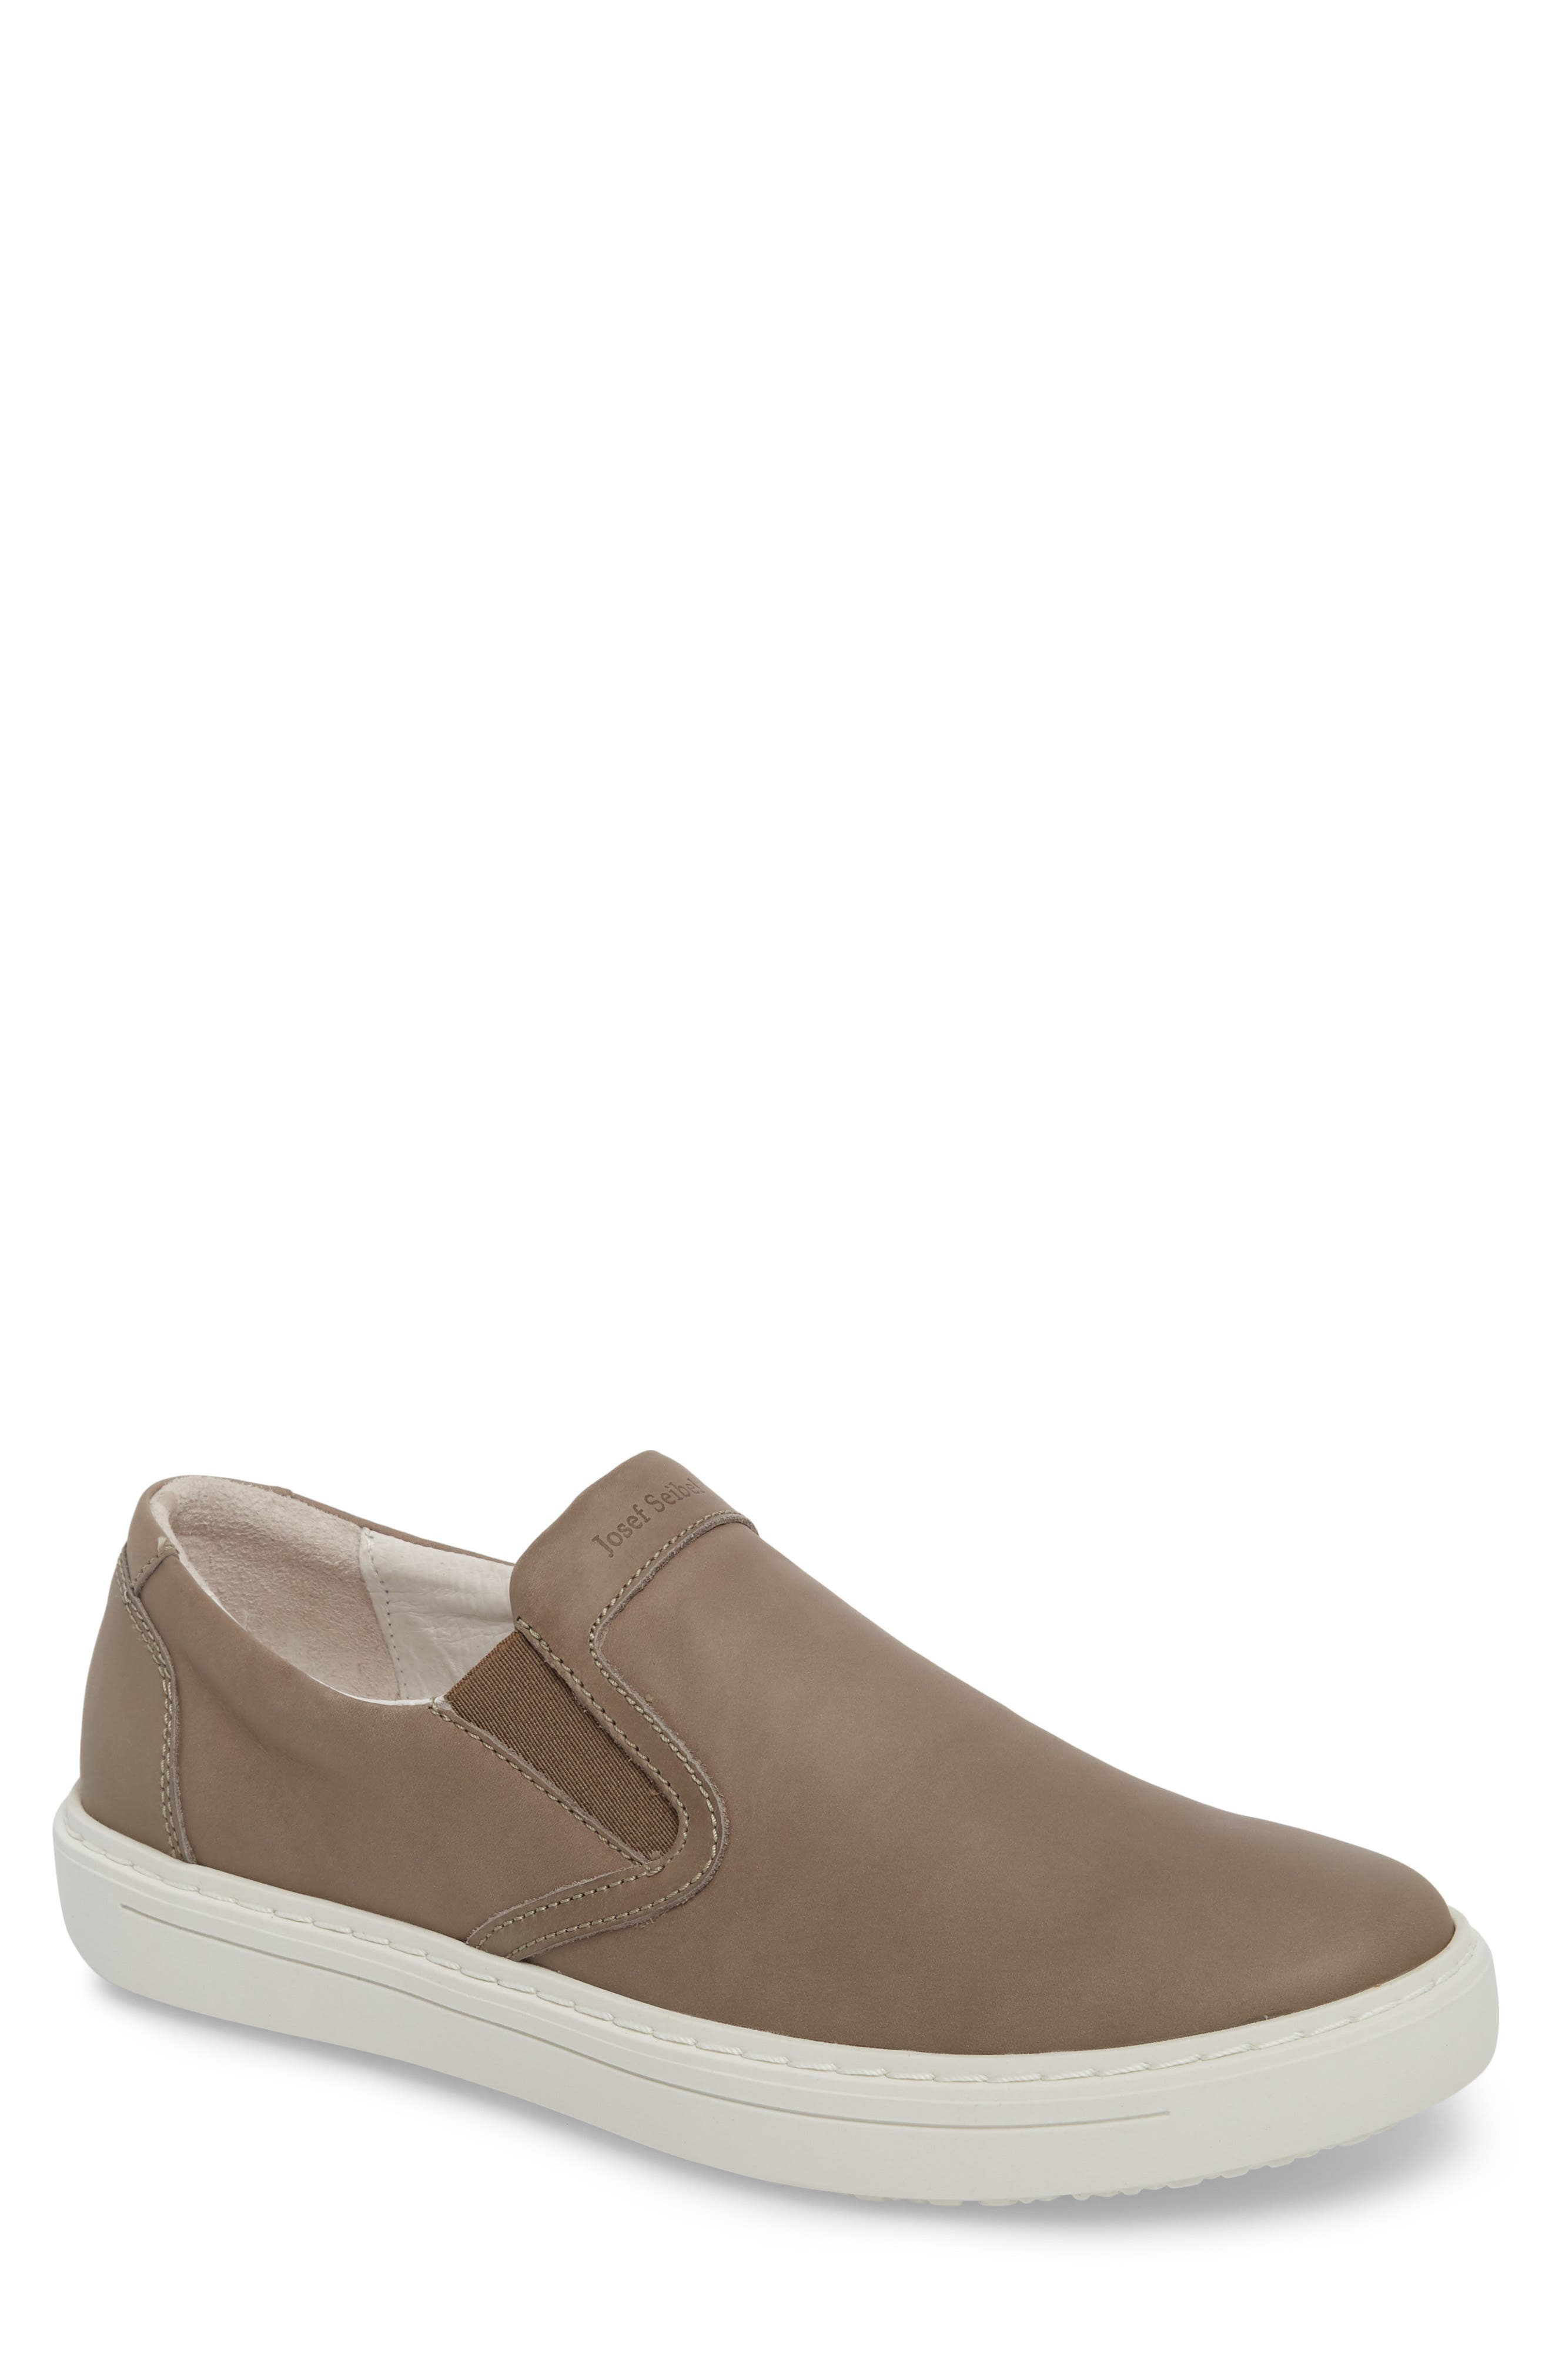 Quentin 15 Slip-On Sneaker,                         Main,                         color, GRAY LEATHER